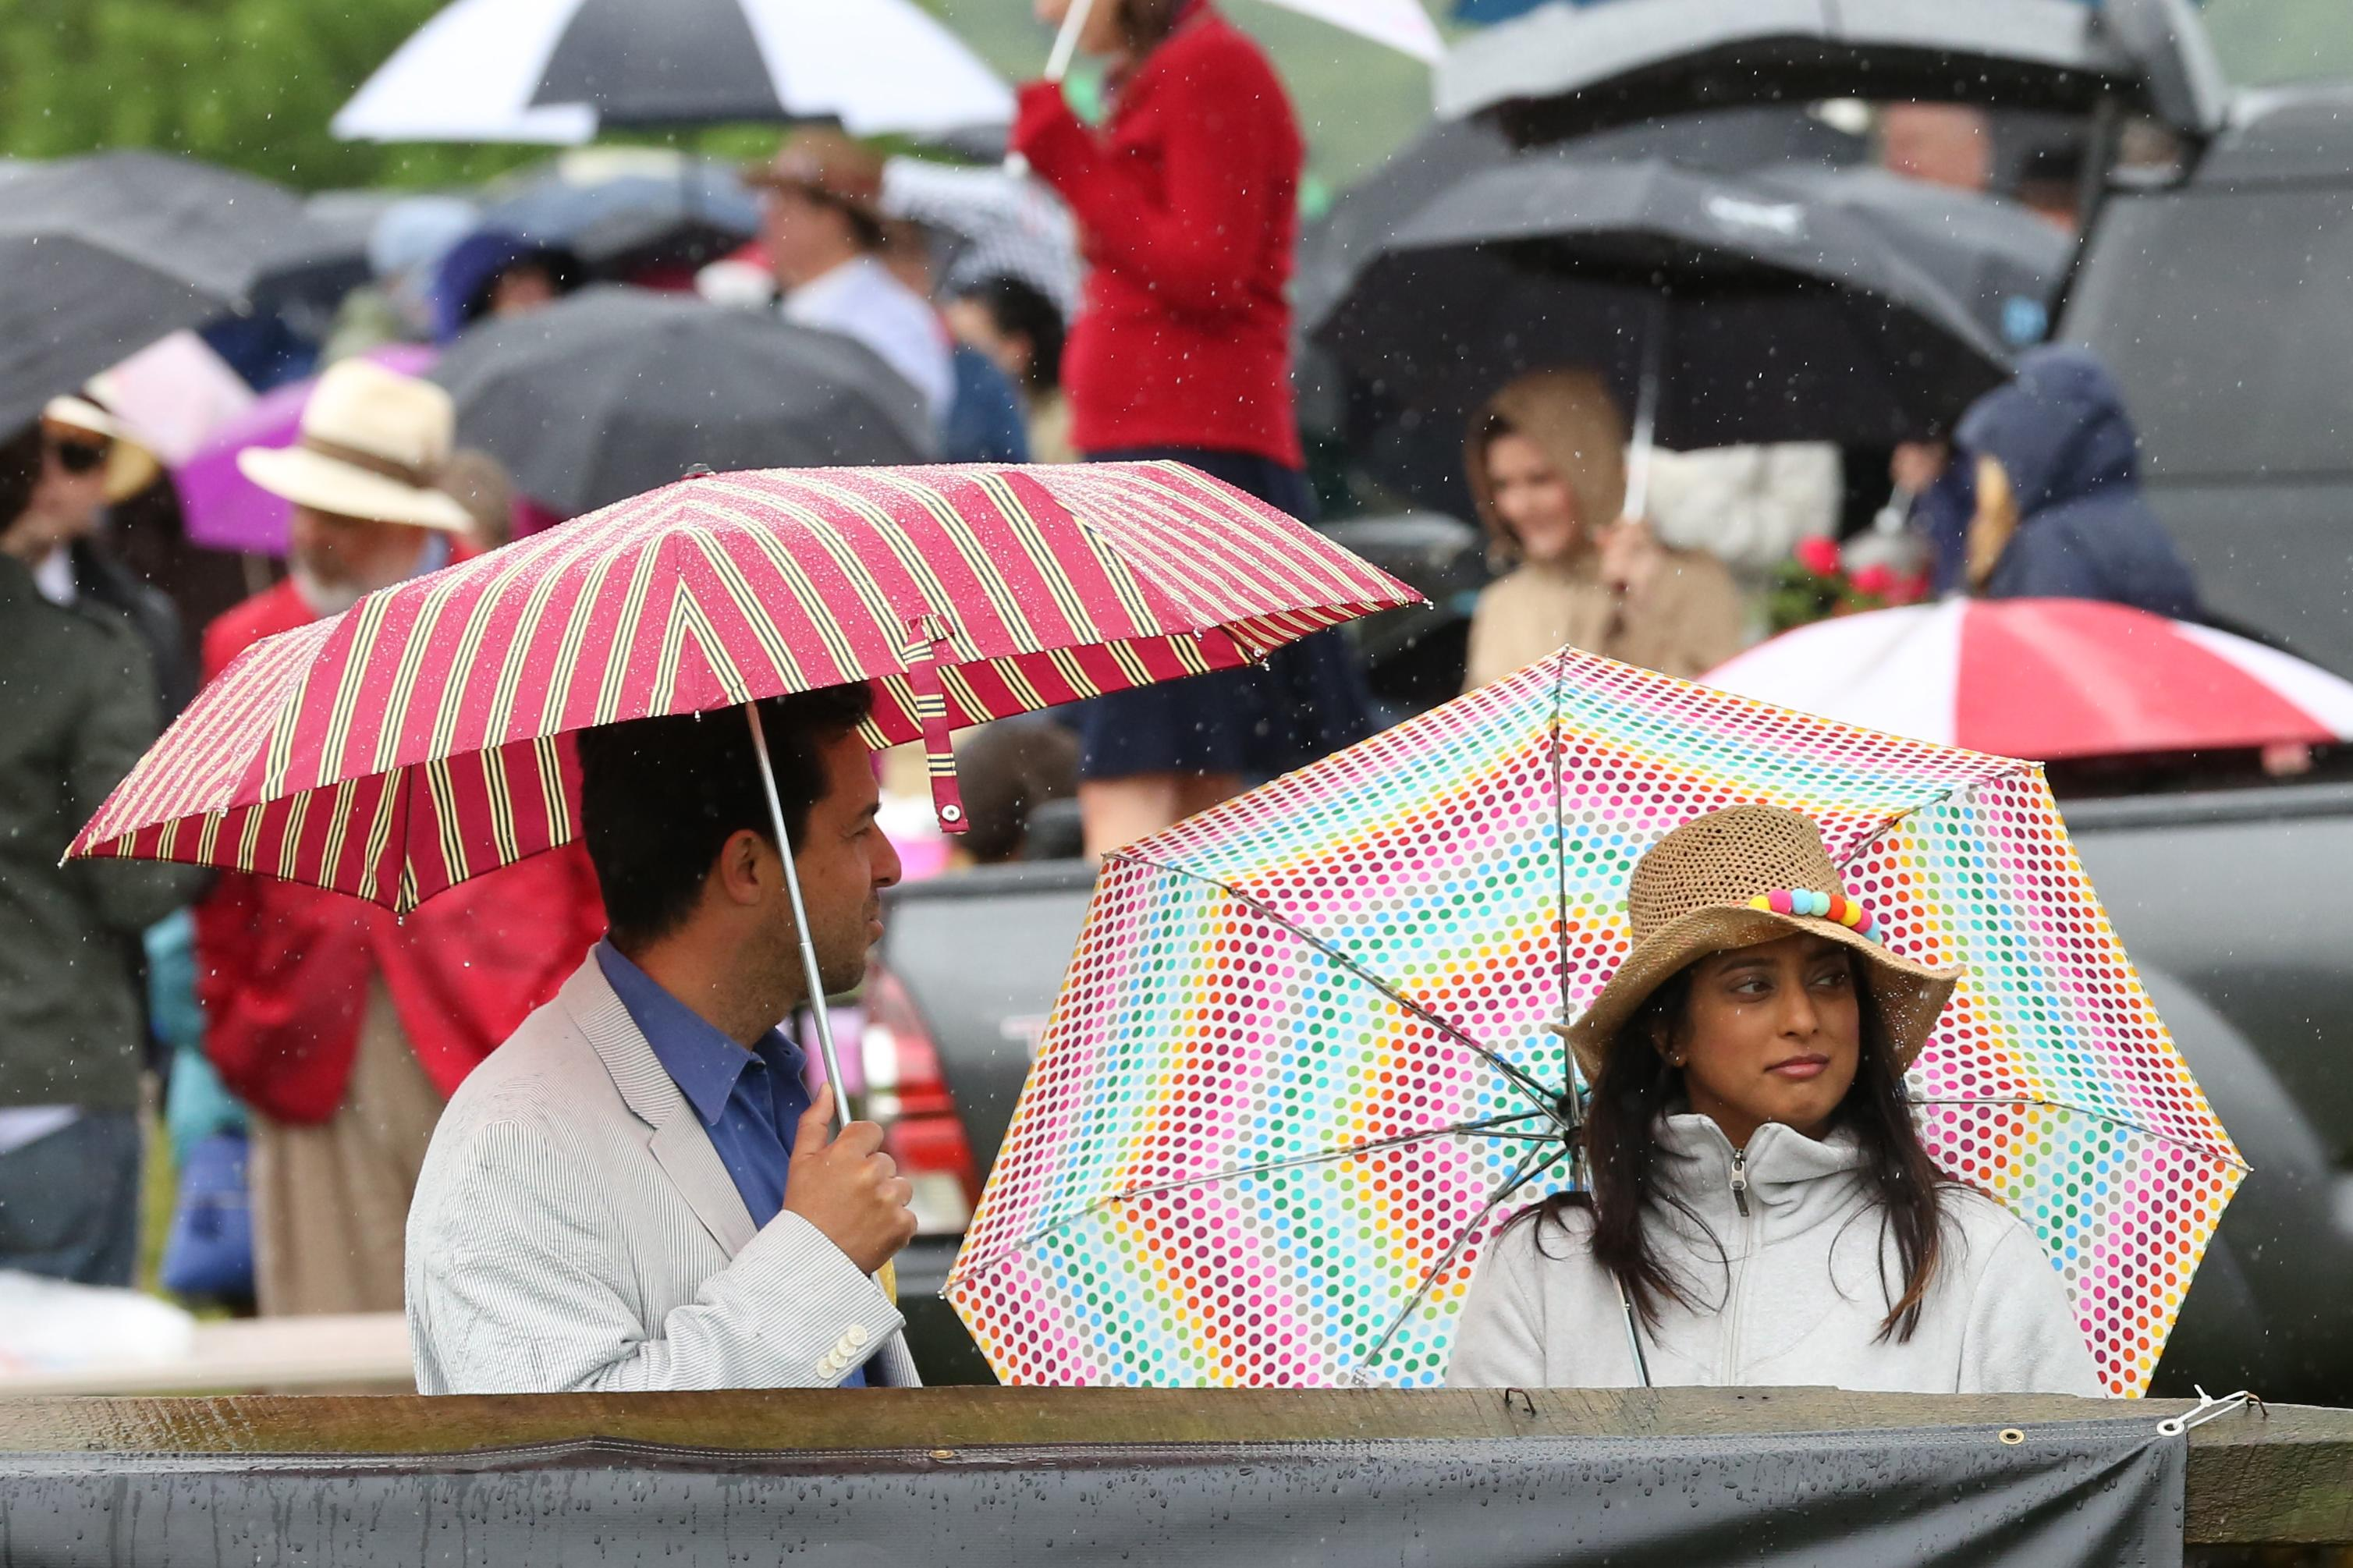 Rain and mud couldn't stop Gold Cup fans from descending on Great Meadow. The horse races enthralled audiences as guests dawned their best hats and placed their bets. (Amanda Andrade-Rhoades/DC Refined)